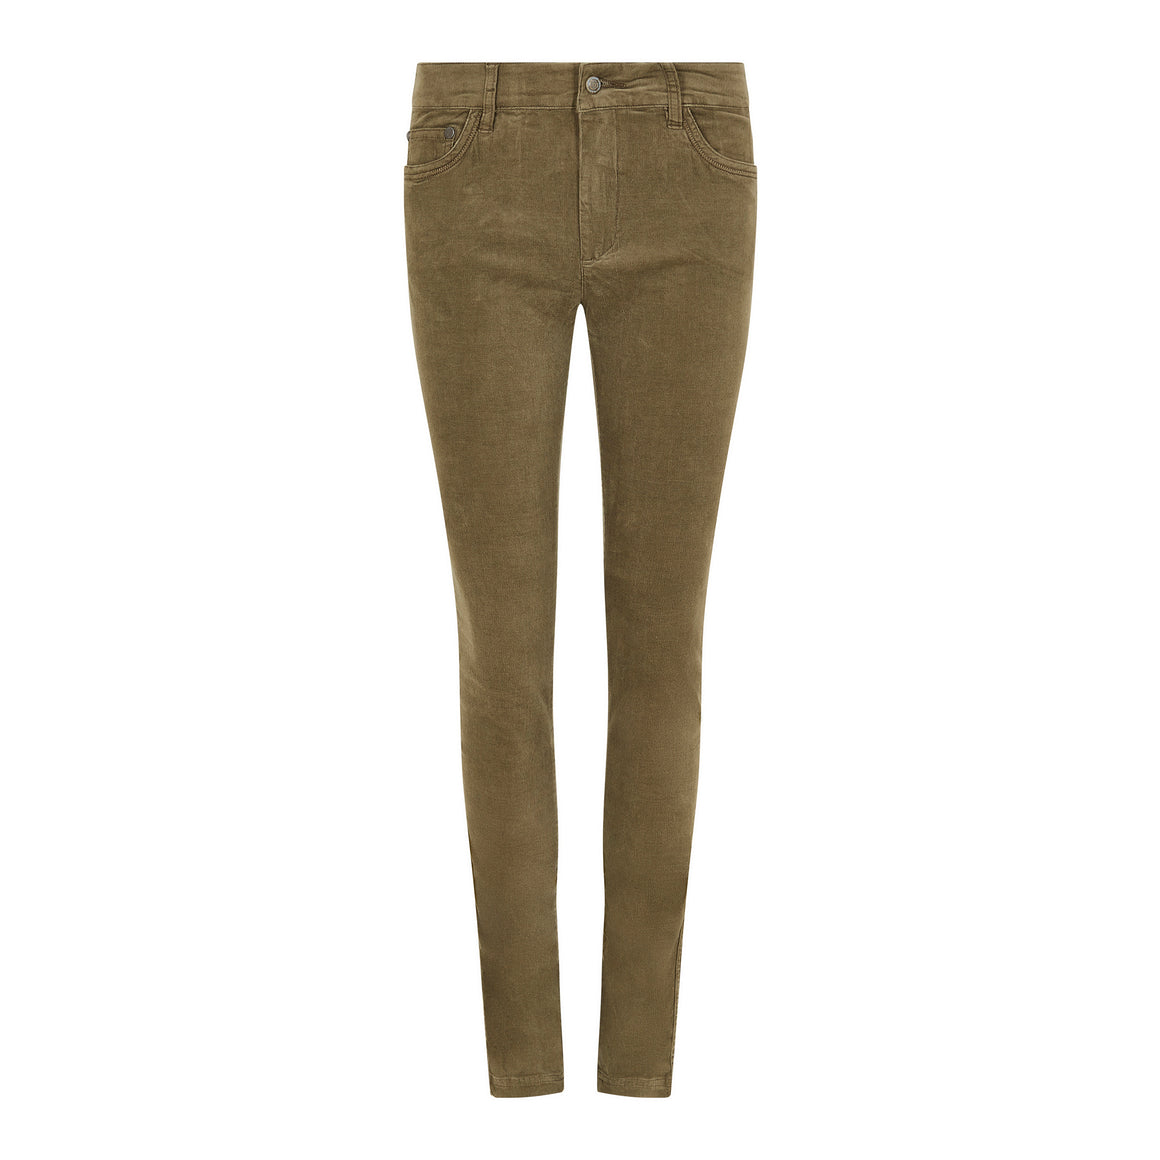 Honeysuckle Cord Trouser for Women in Dusky Green